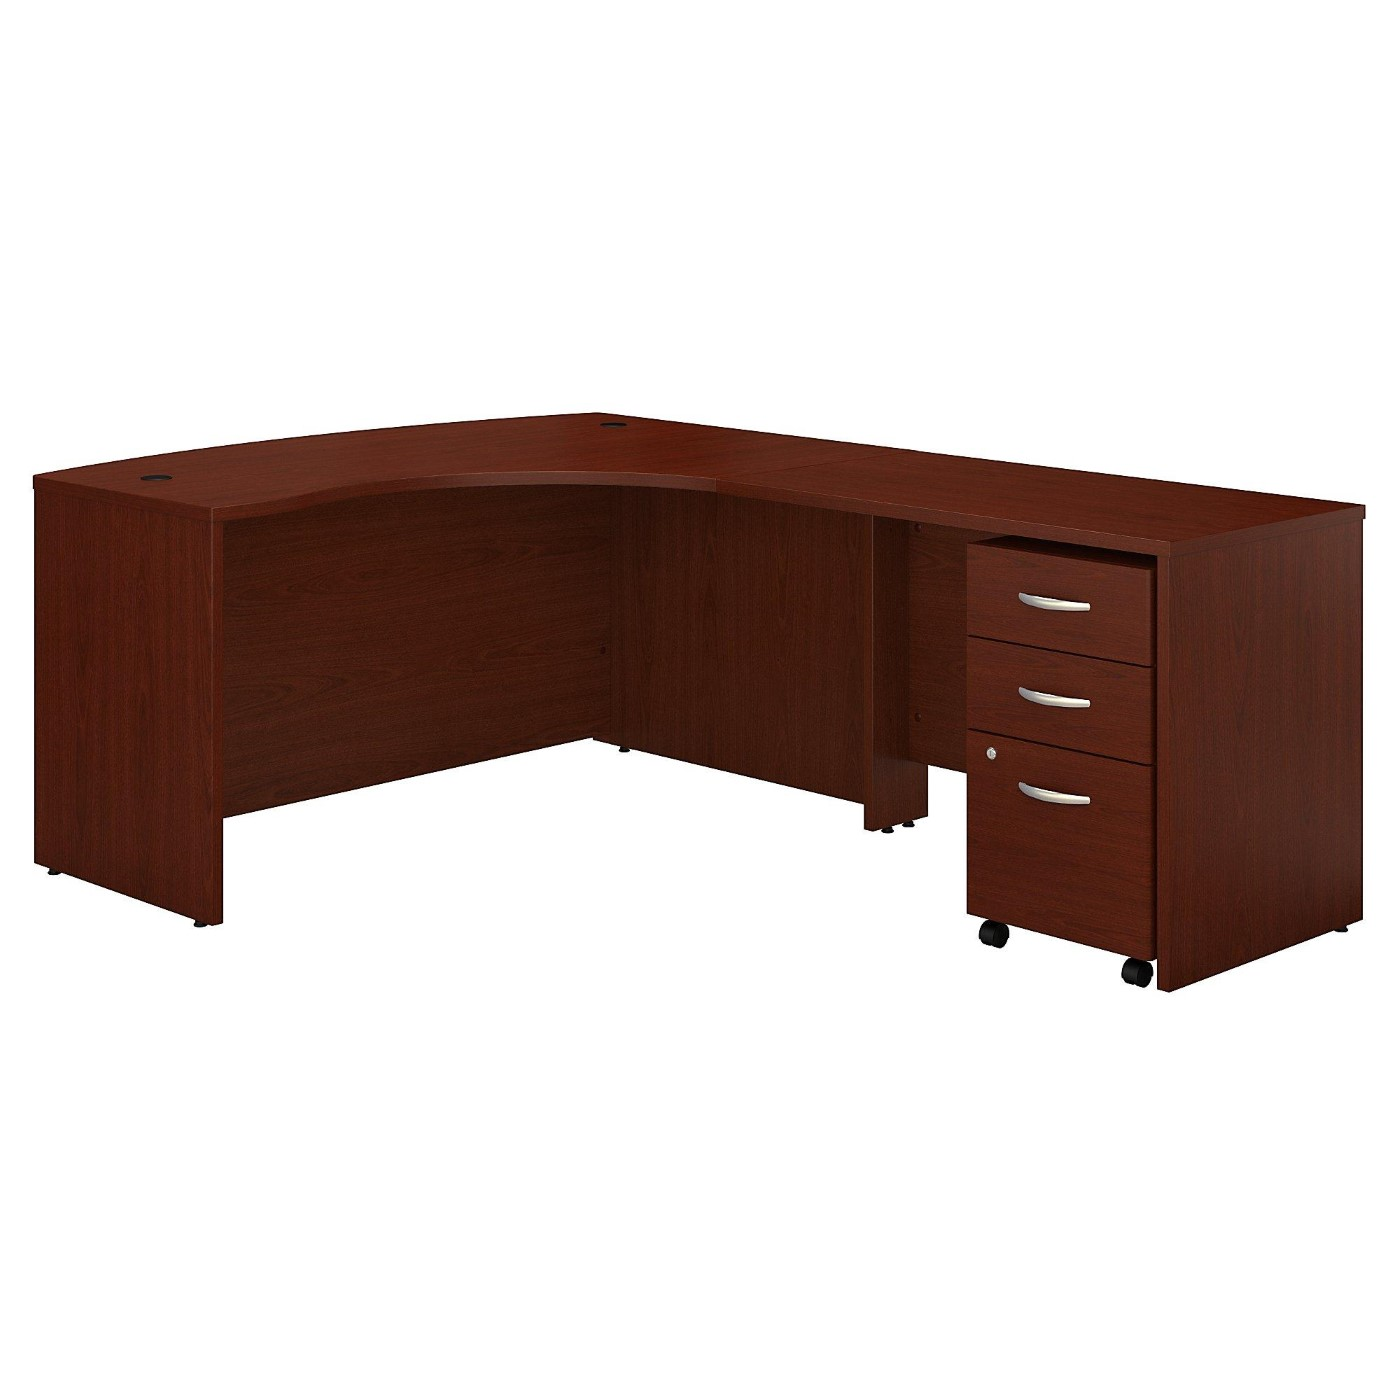 <font color=#c60><b>BUSH BUSINESS FURNITURE SERIES C LEFT HANDED L SHAPED DESK WITH MOBILE FILE CABINET. FREE SHIPPING</font></b>